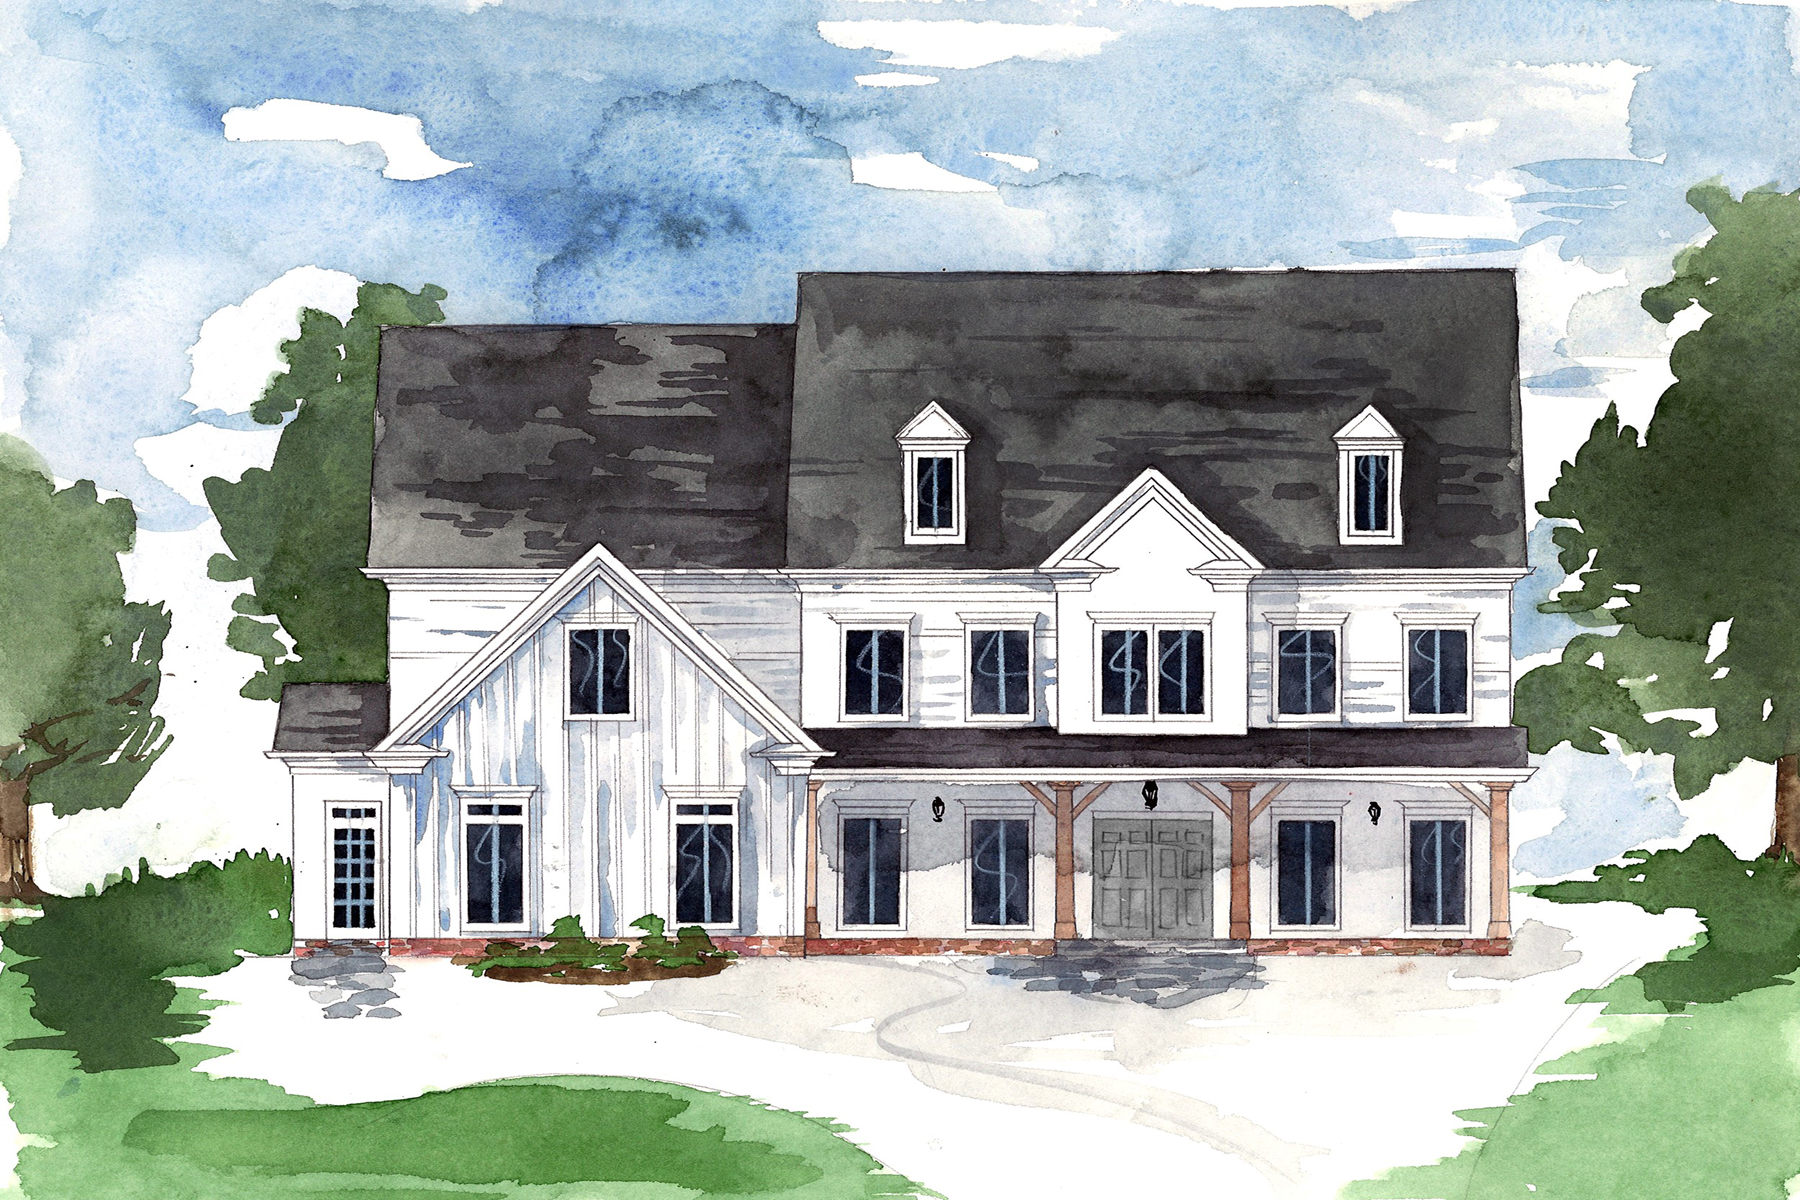 Single Family Home for Sale at Coming Soon - A Fabulous New Build on Prominent Equestrian Wood Road 1730 Highgrove Club Drive Milton, Georgia 30004 United States